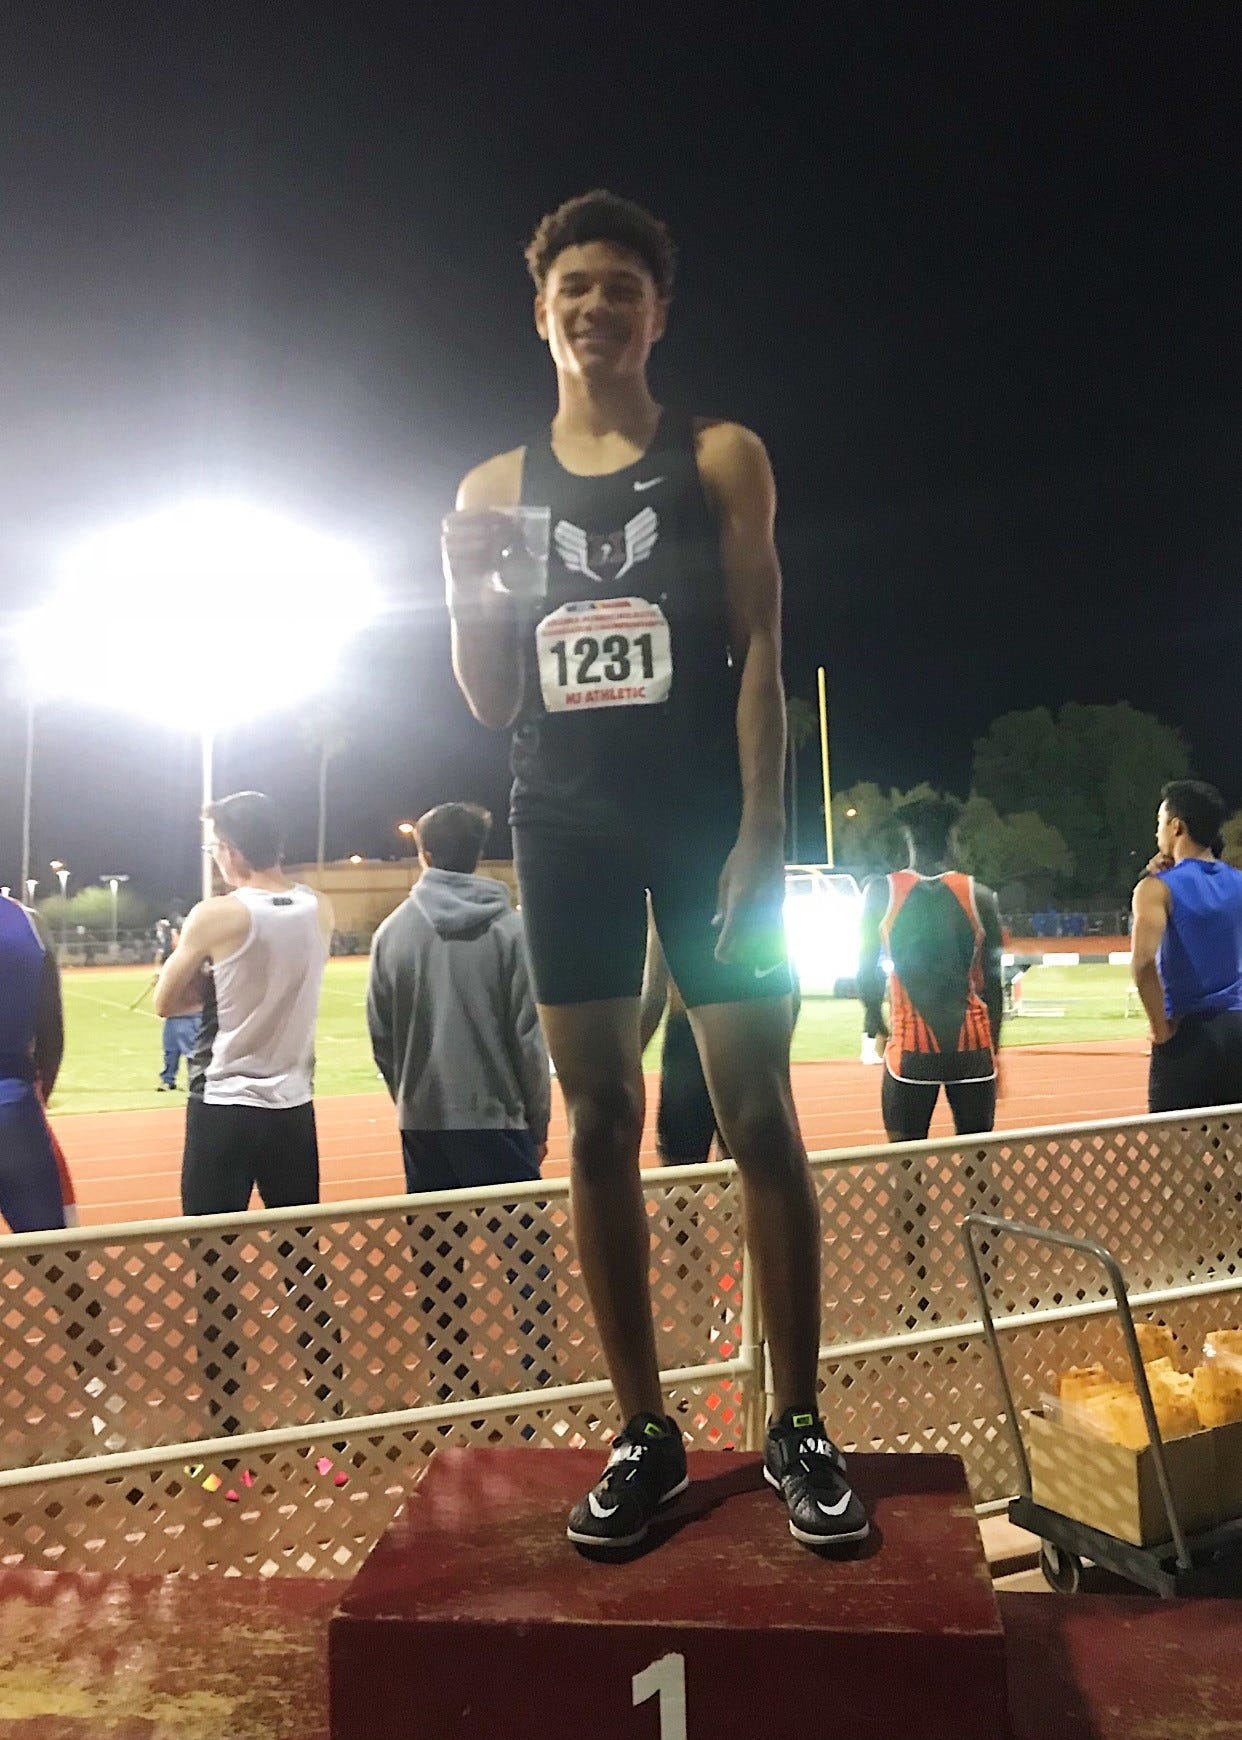 Malik Whitaker wins first place in high jump event at Brophy Prep AMDG Invitational on March 23, 2019